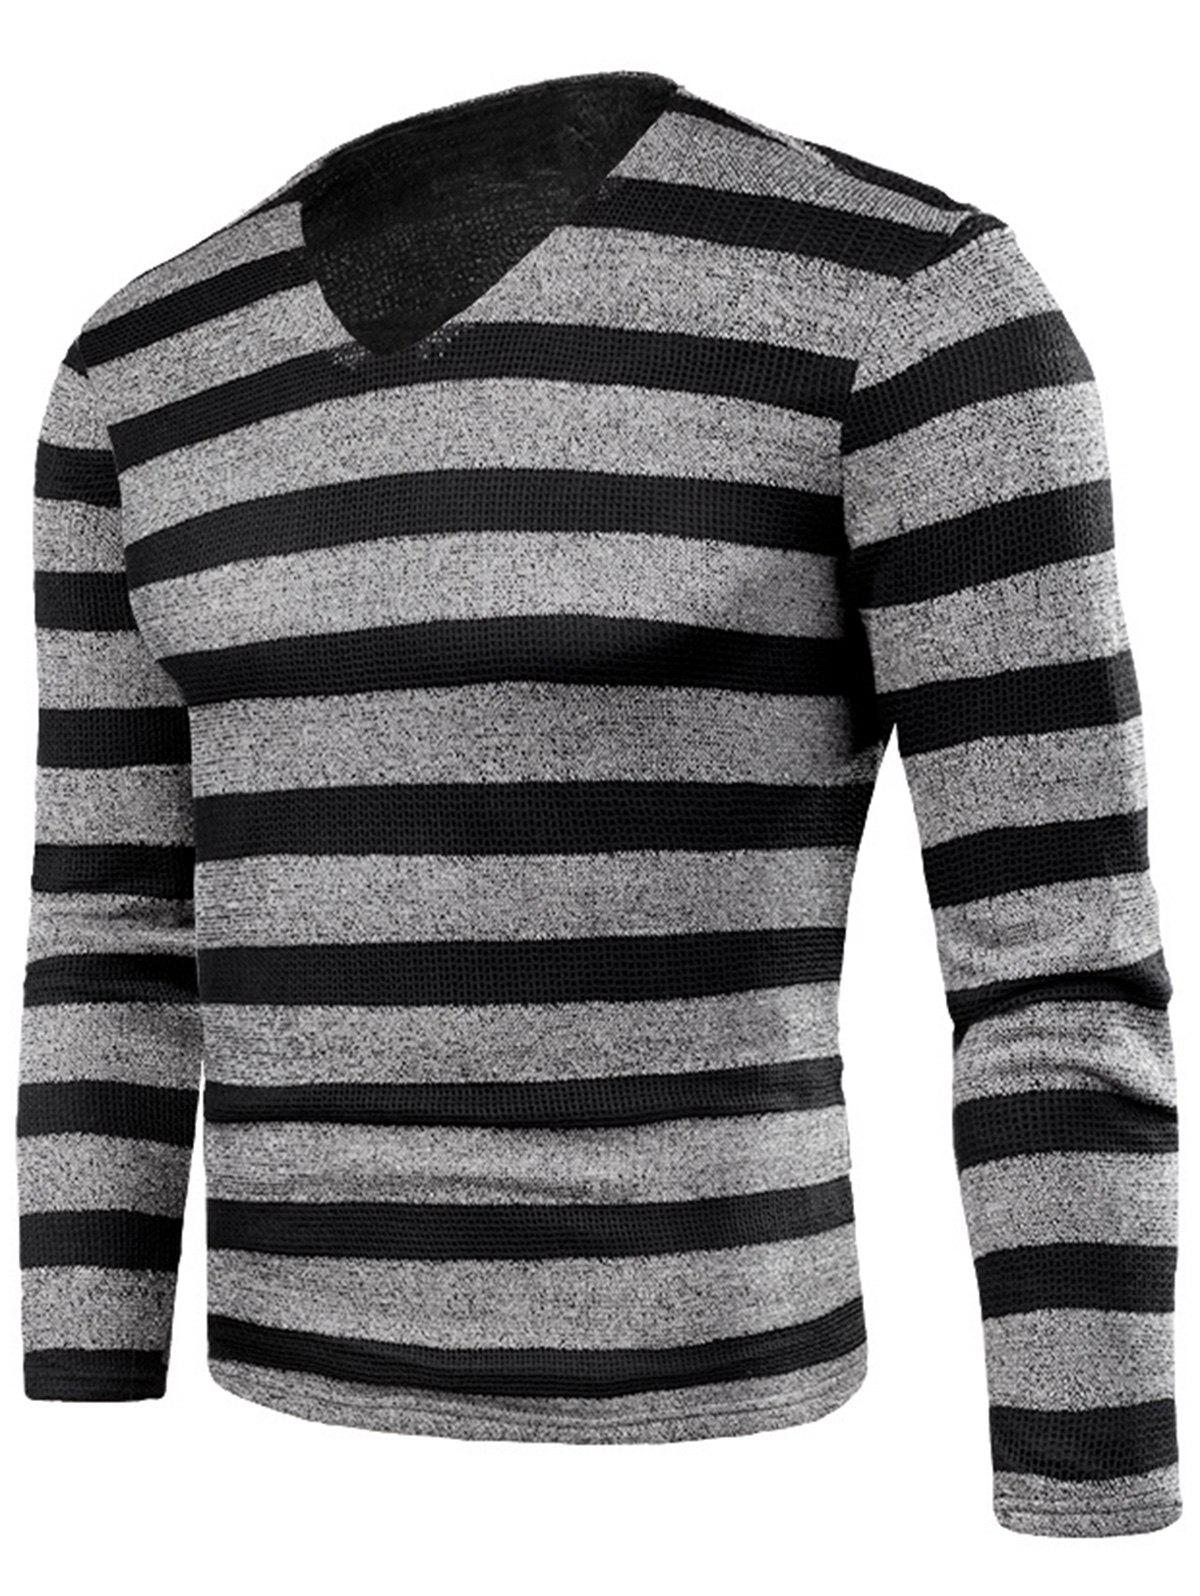 V Neck Stripe Fleece Knitted T-shirt - GRAY 6XL